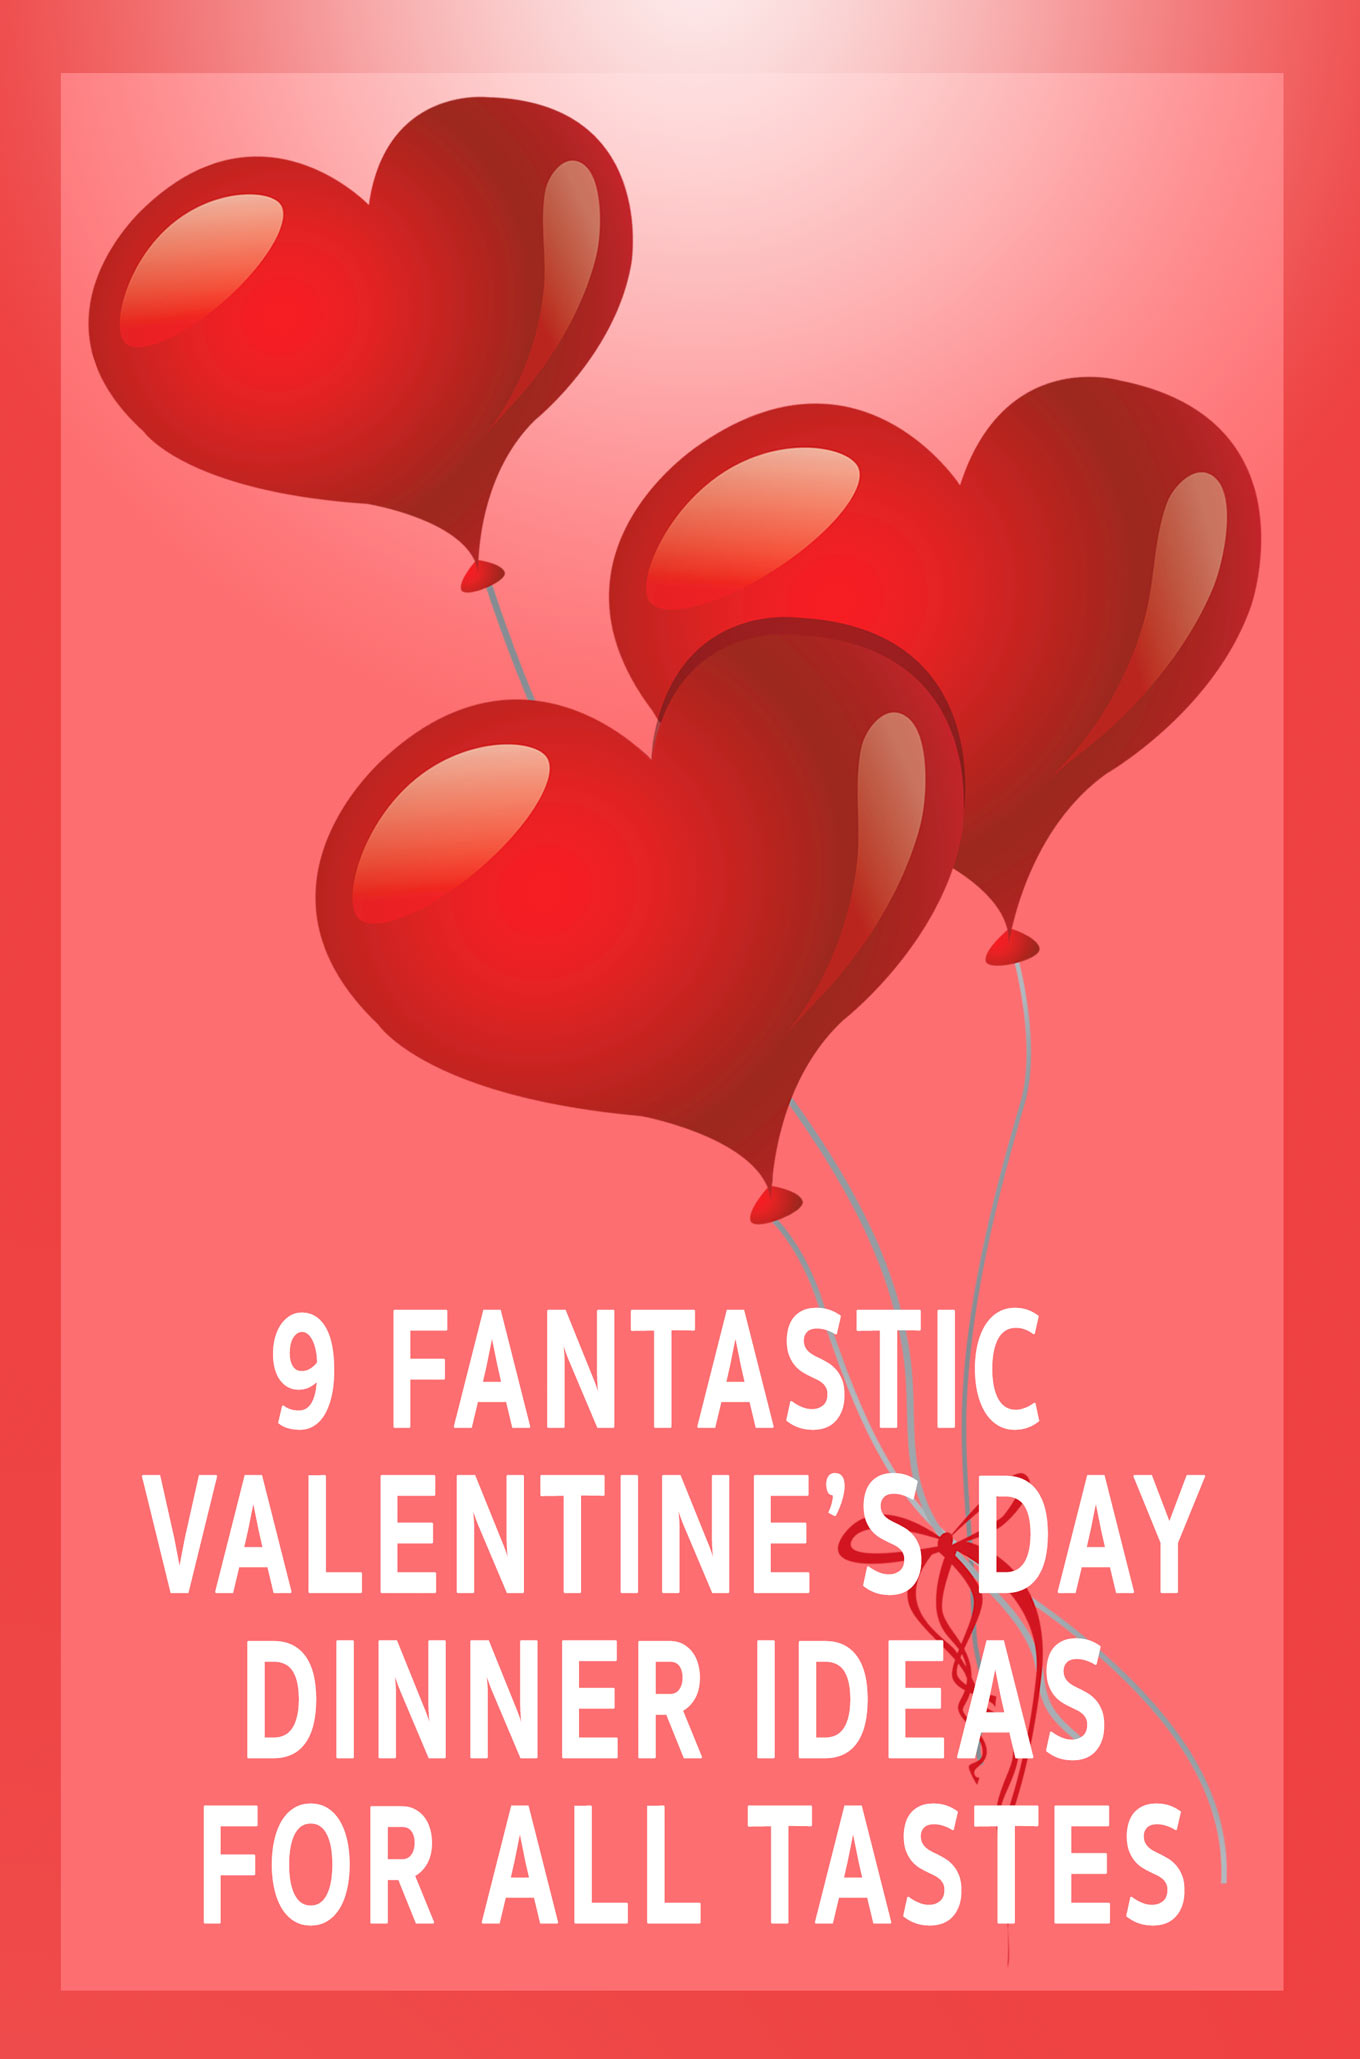 9 Valentine's Day Dinner Recipes for Every Taste including vegetarian, chicken, beef, pork, fish, venison, veal, partridge and lamb